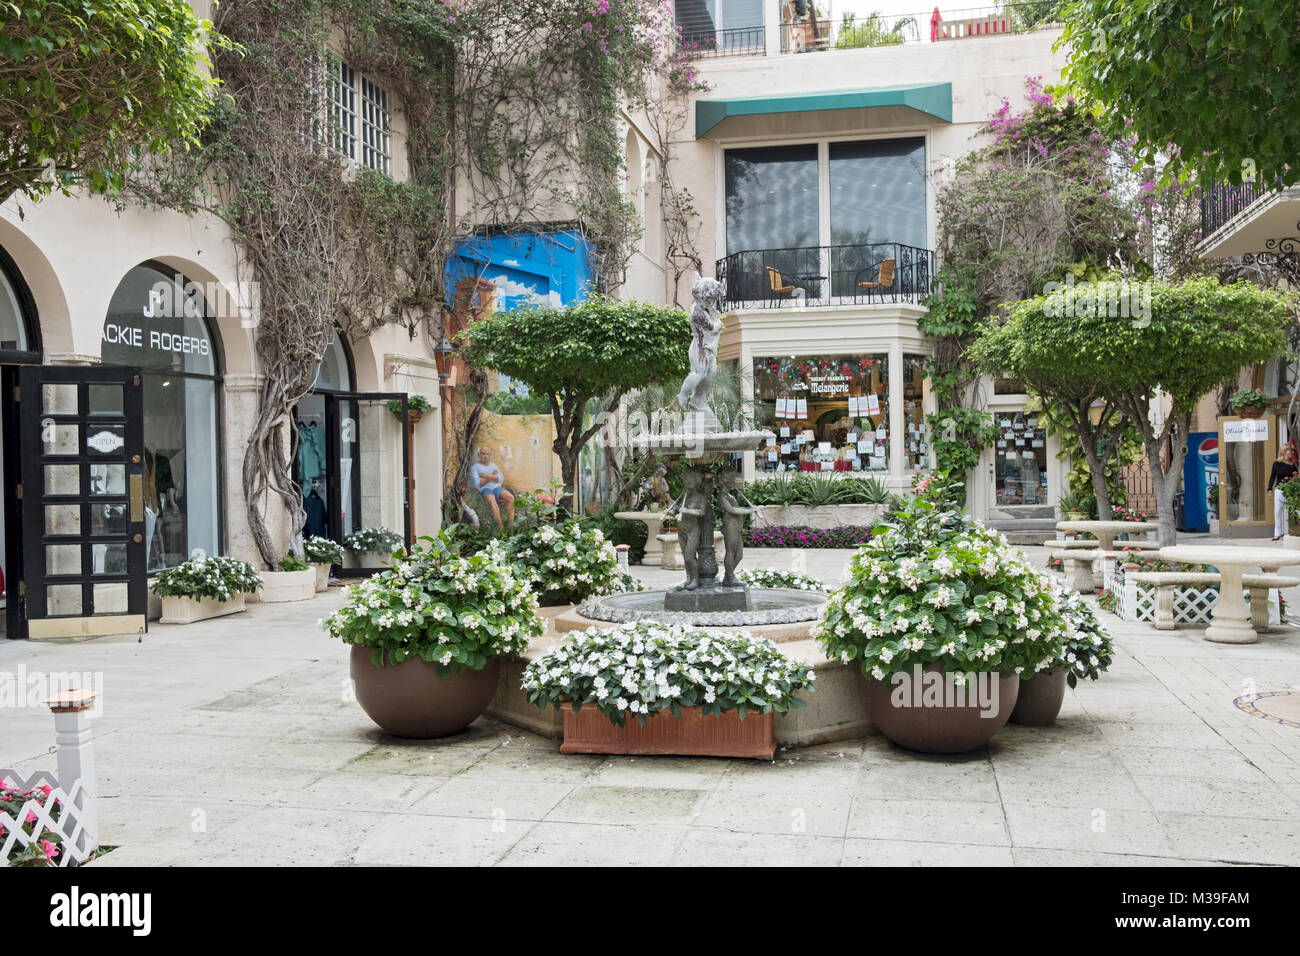 The Via Amore courtyard with its pricey shops in the shopping district off Worth Avenue in Palm Beach Florida. - Stock Image